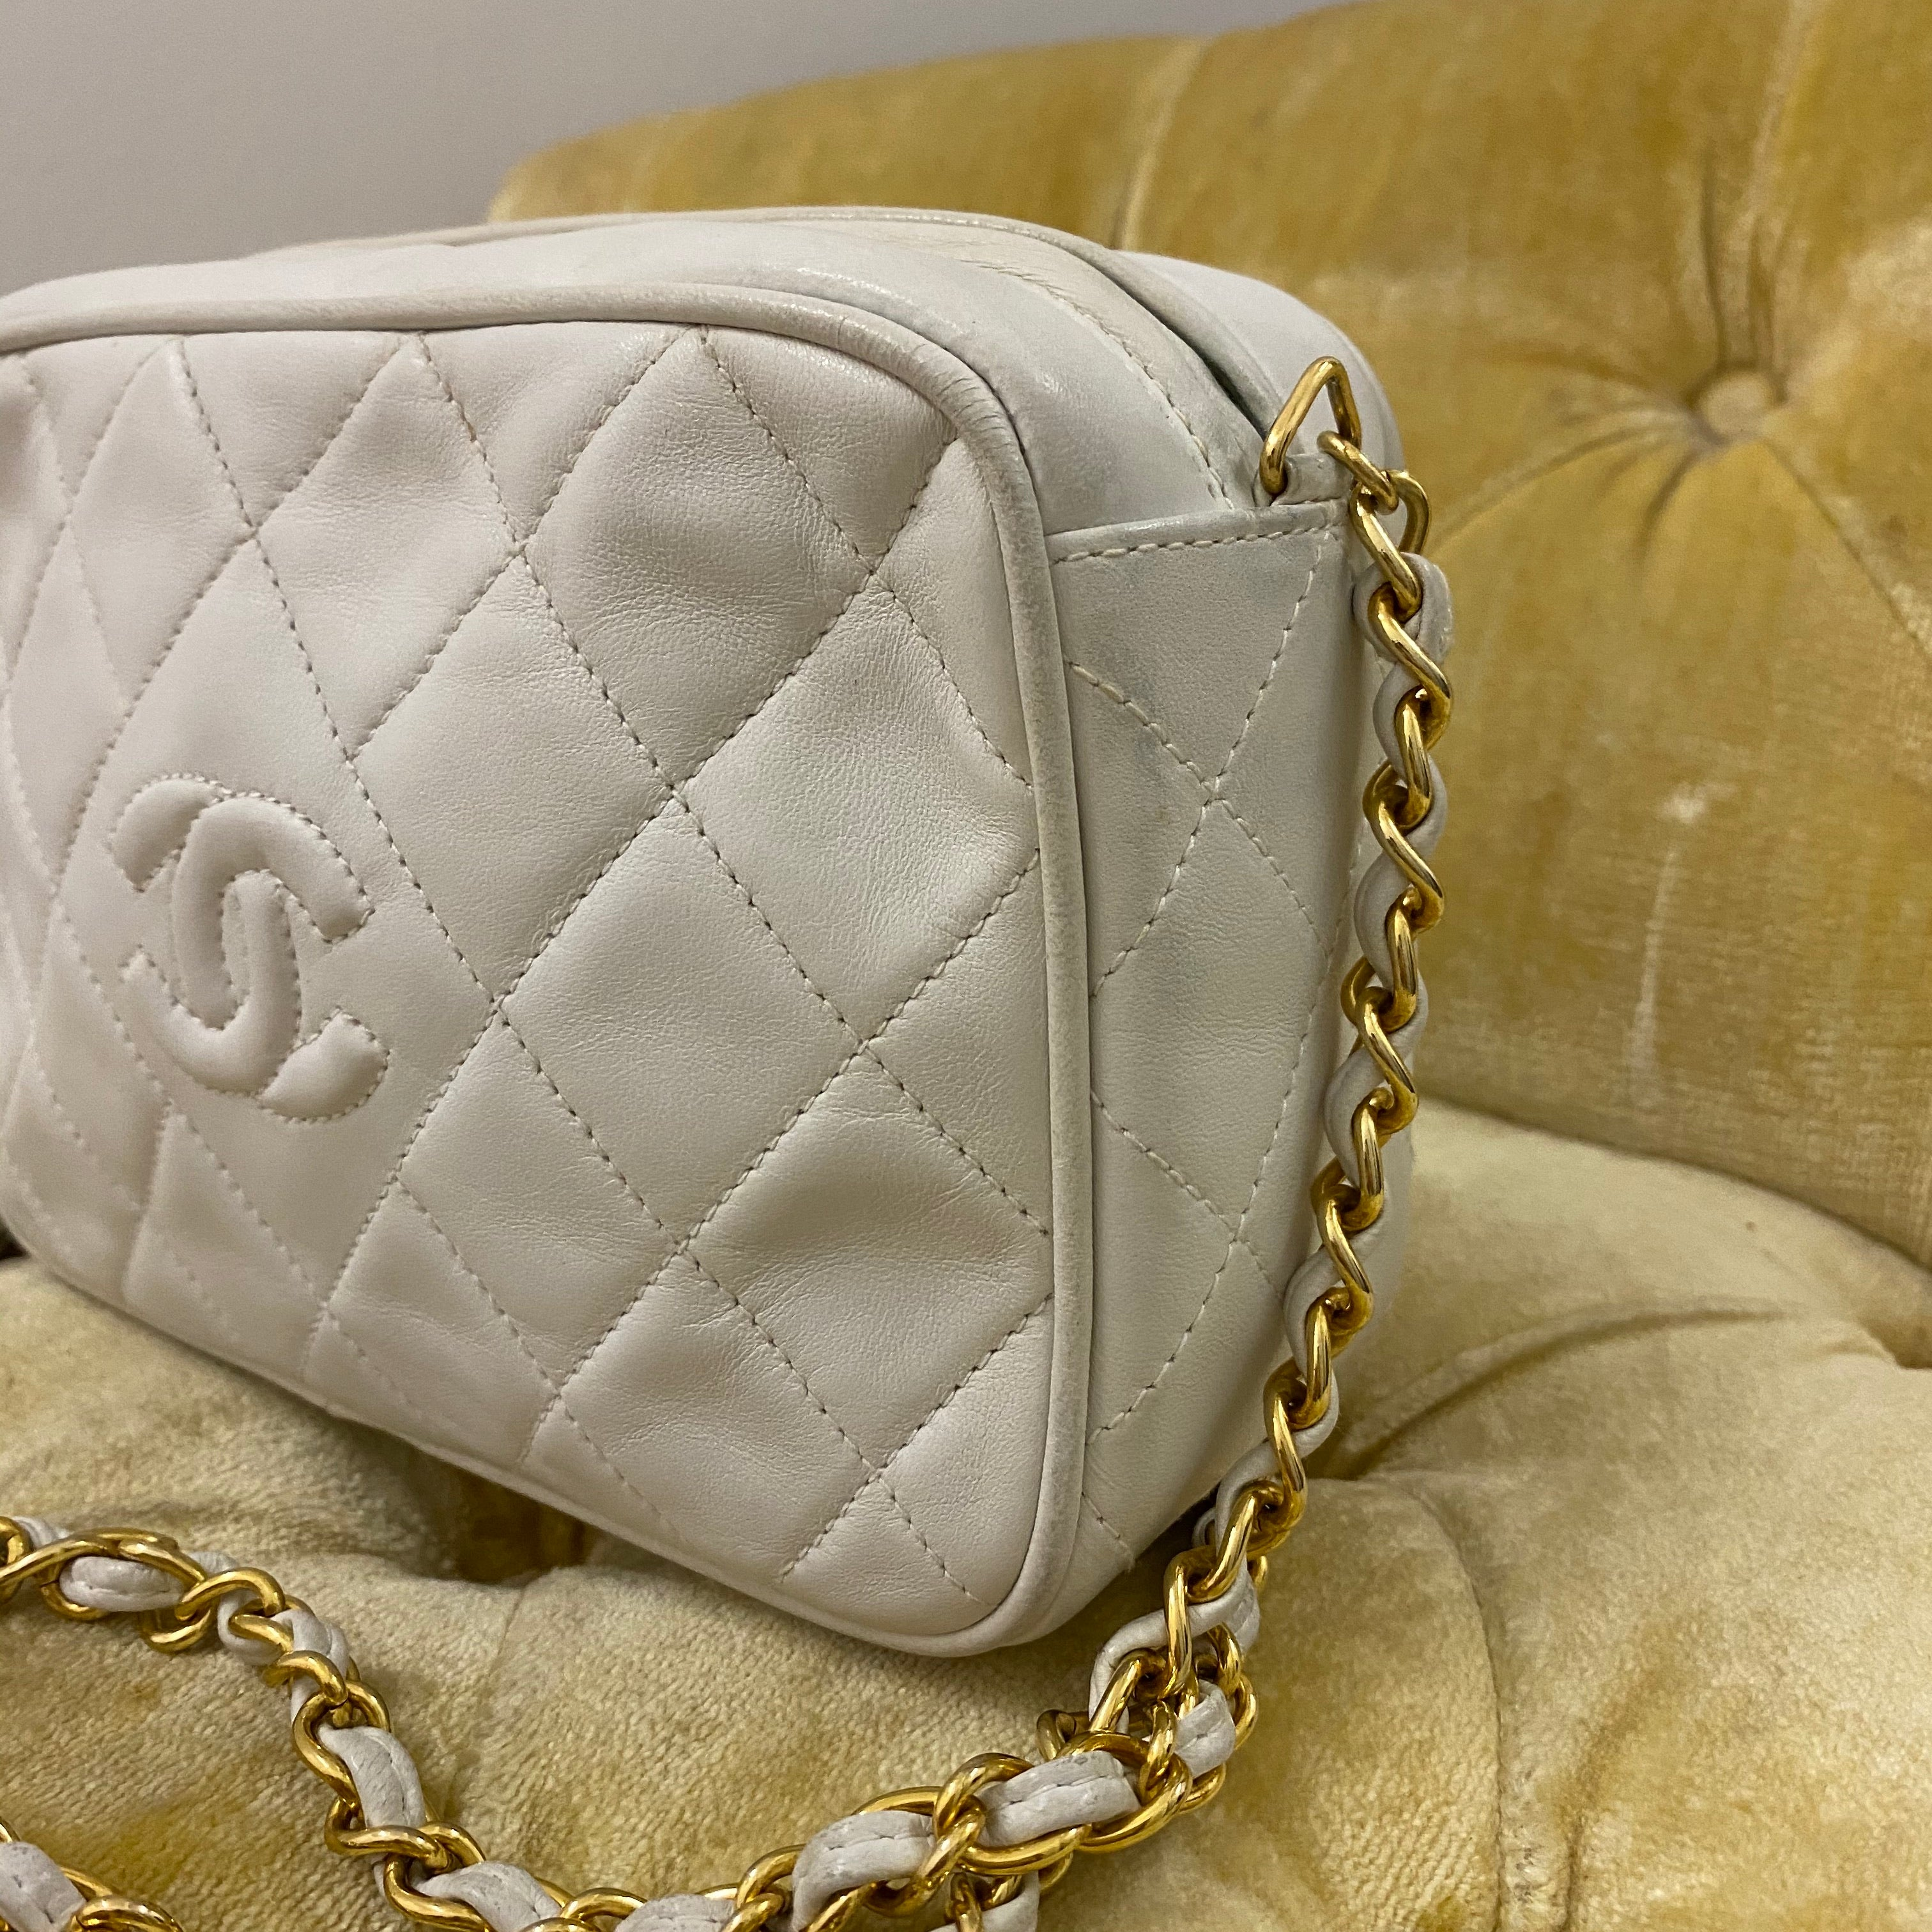 Chanel Vintage White Quilted Camera Bag